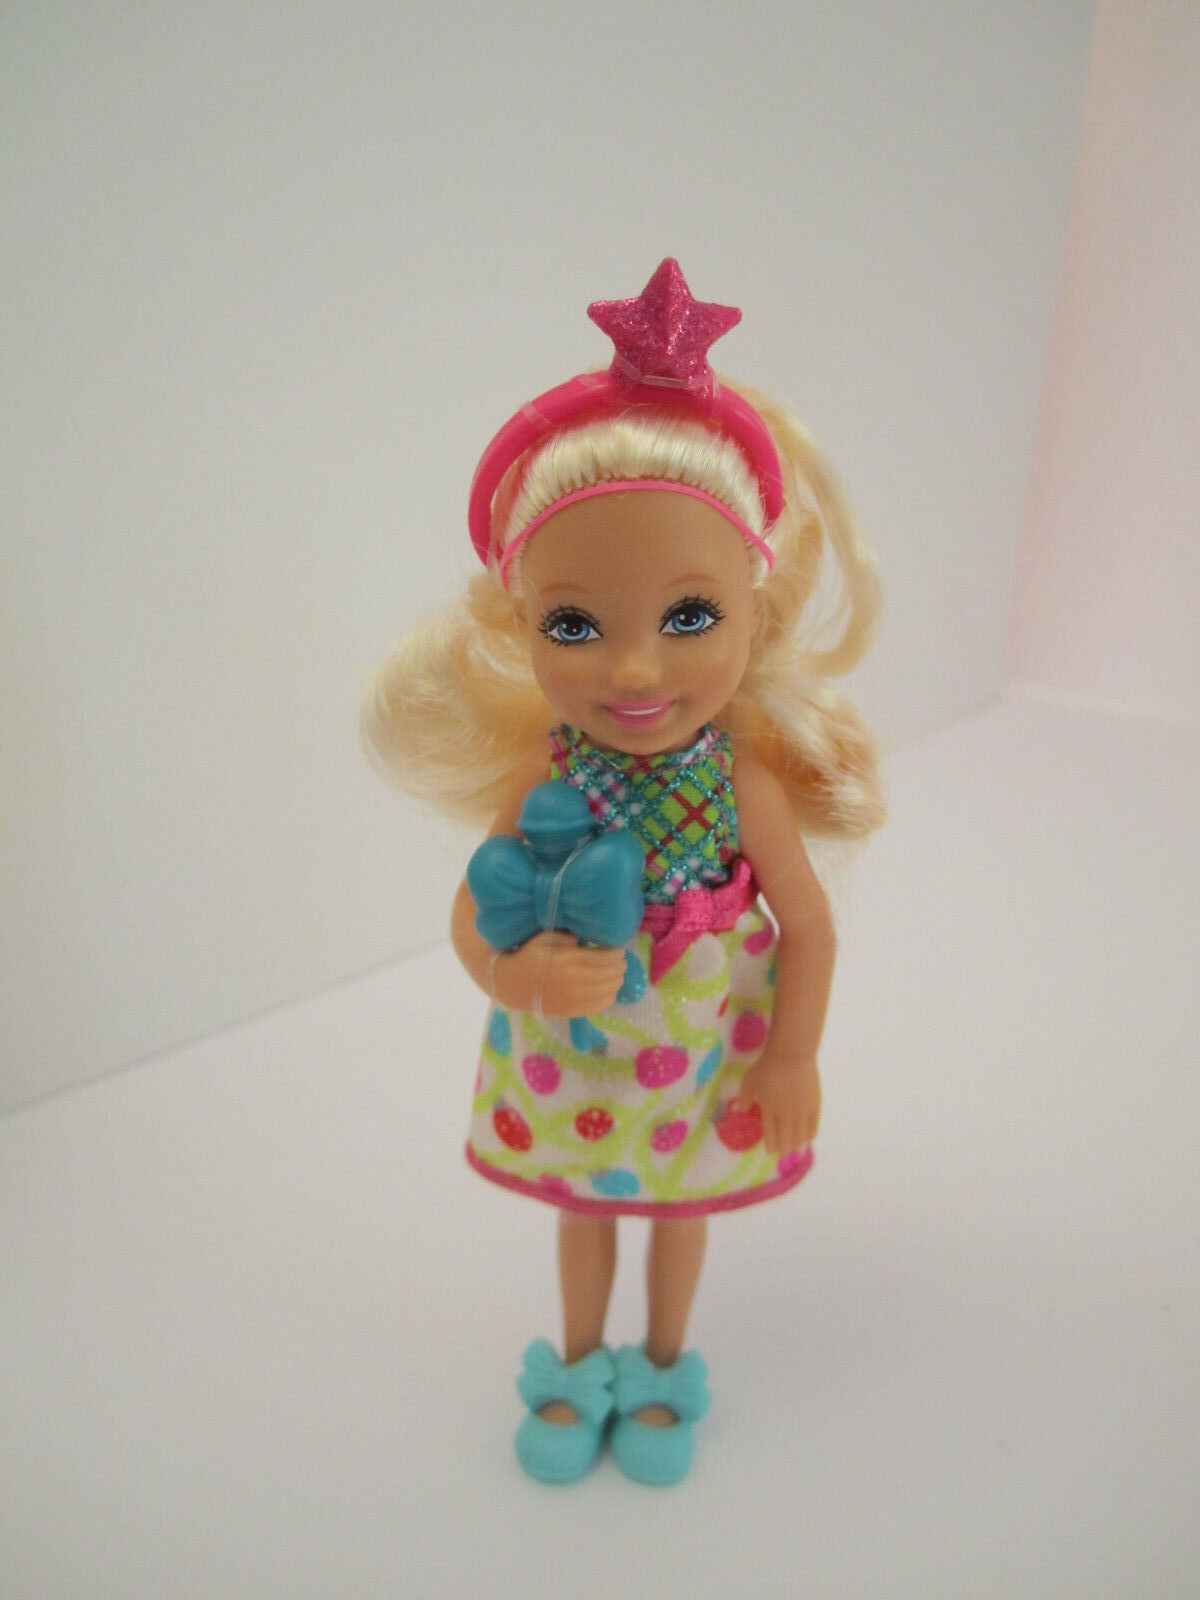 MINT Chelsea doll from Barbie Sisters Giftset A Perfect Christmas 2011